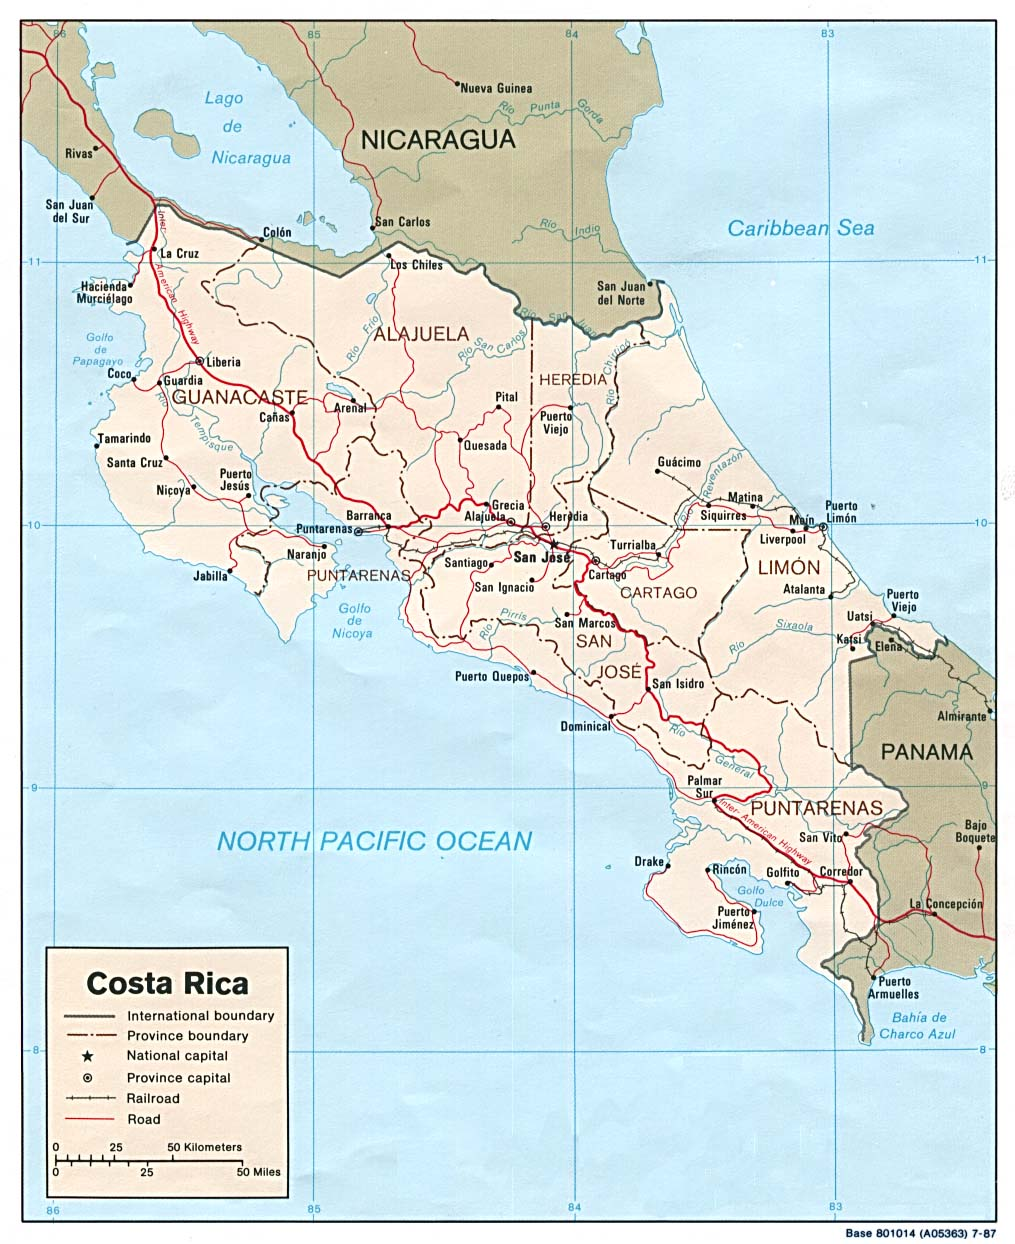 Costa Rica Maps - Perry-Castañeda Map Collection - UT Library Online